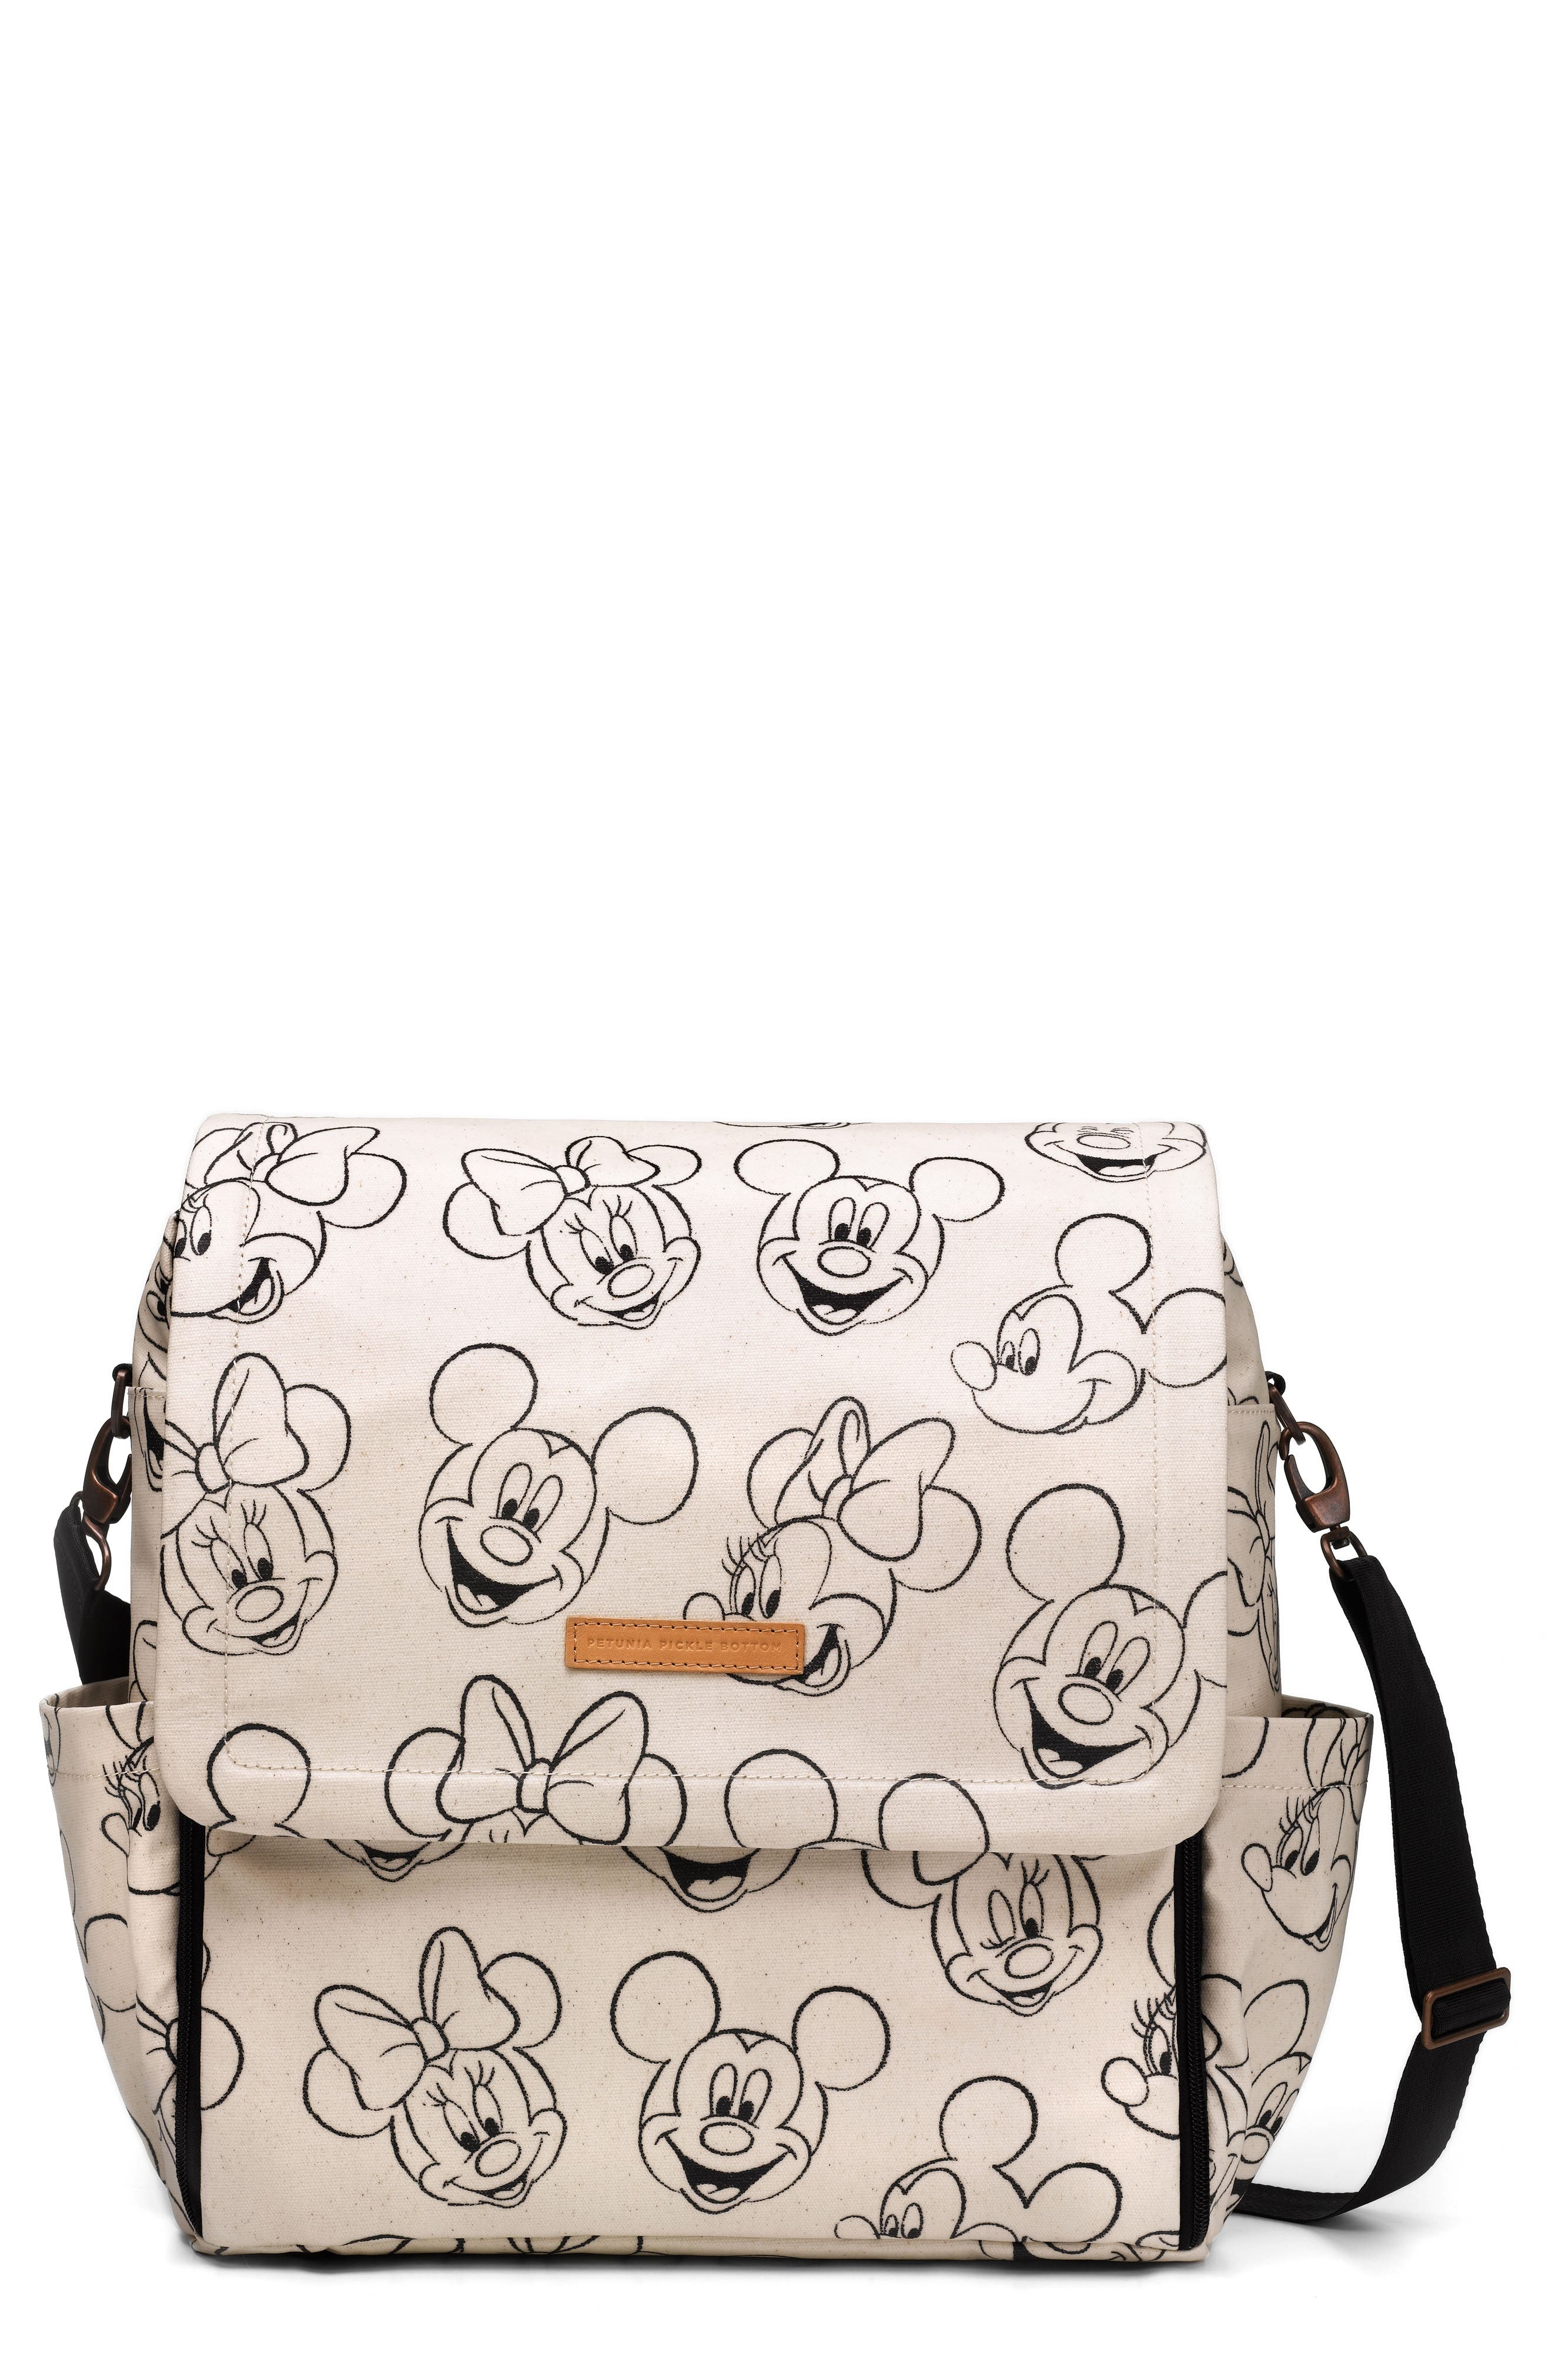 Boxy Backpack - Disney Diaper Bag,                             Main thumbnail 1, color,                             Sketchbook